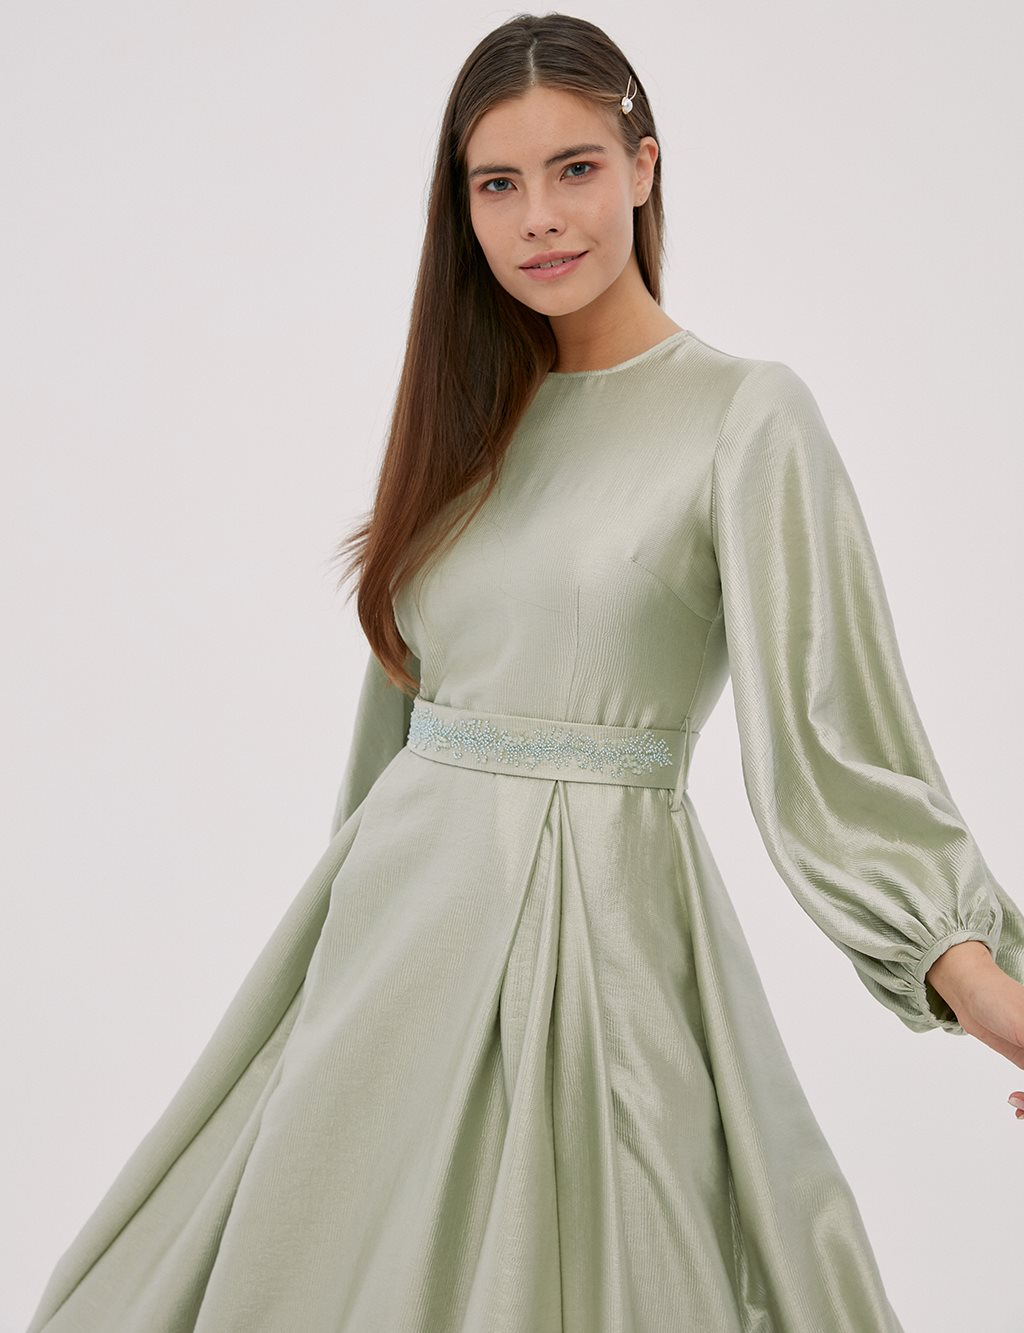 Balloon Sleeve Dress Mint A20 23029